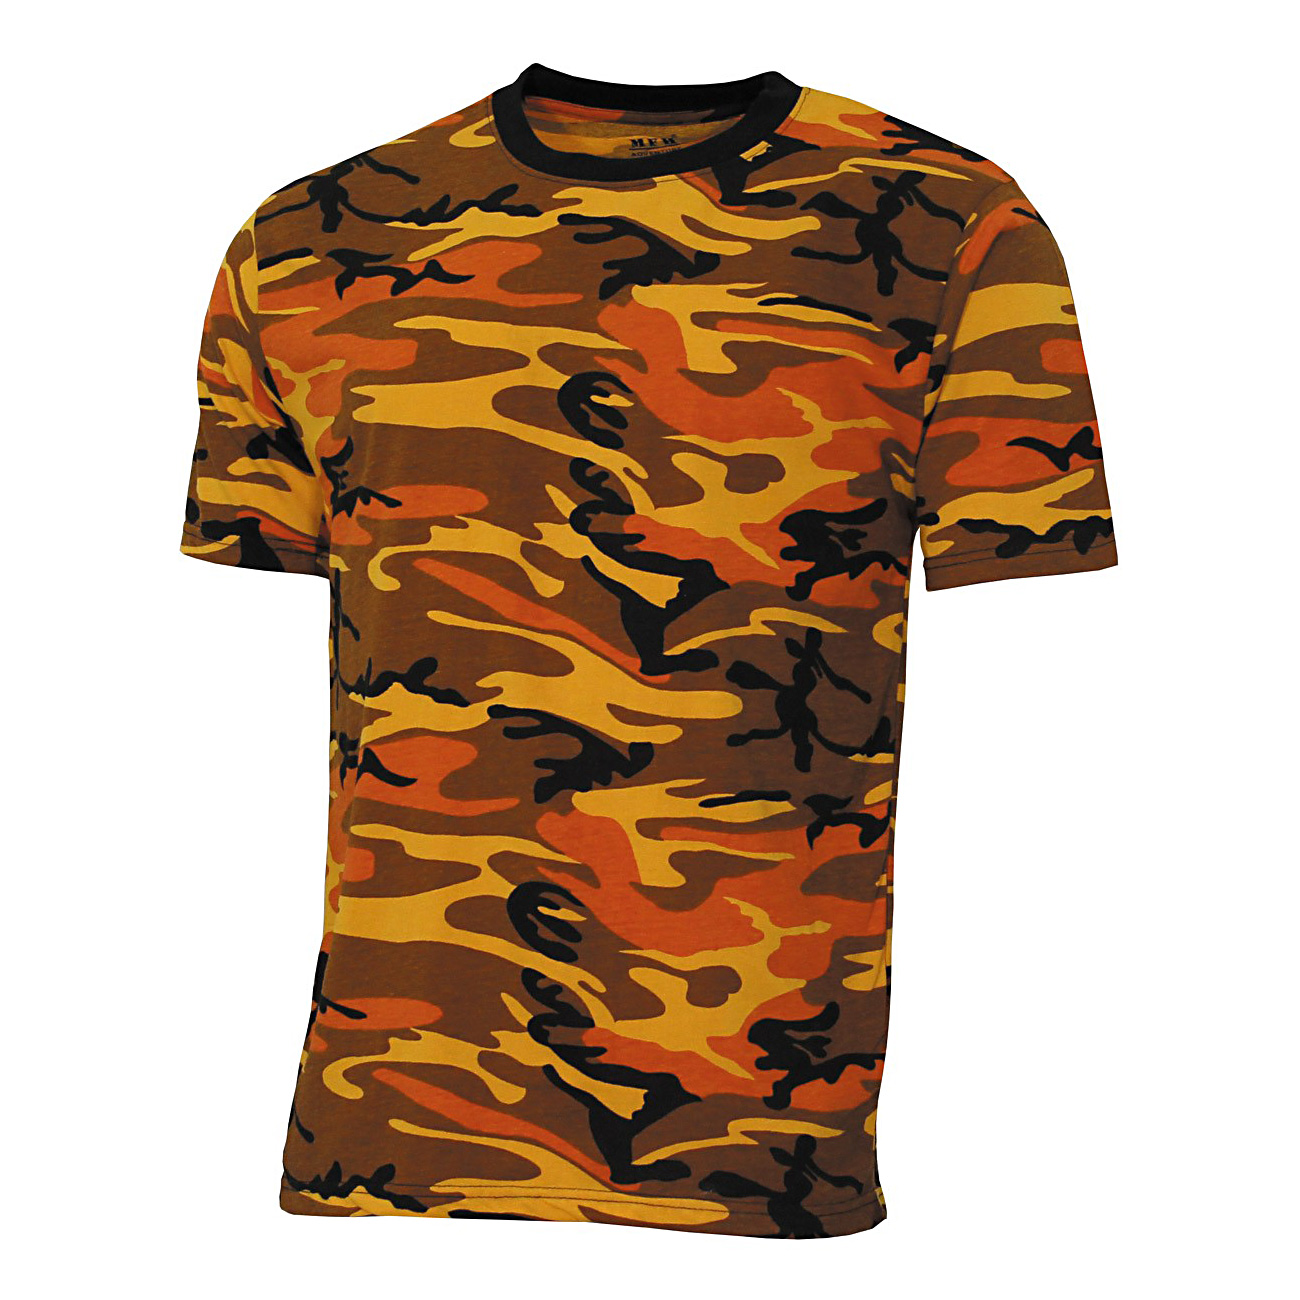 MFH US T-Shirt Streetstyle orange-camo 0